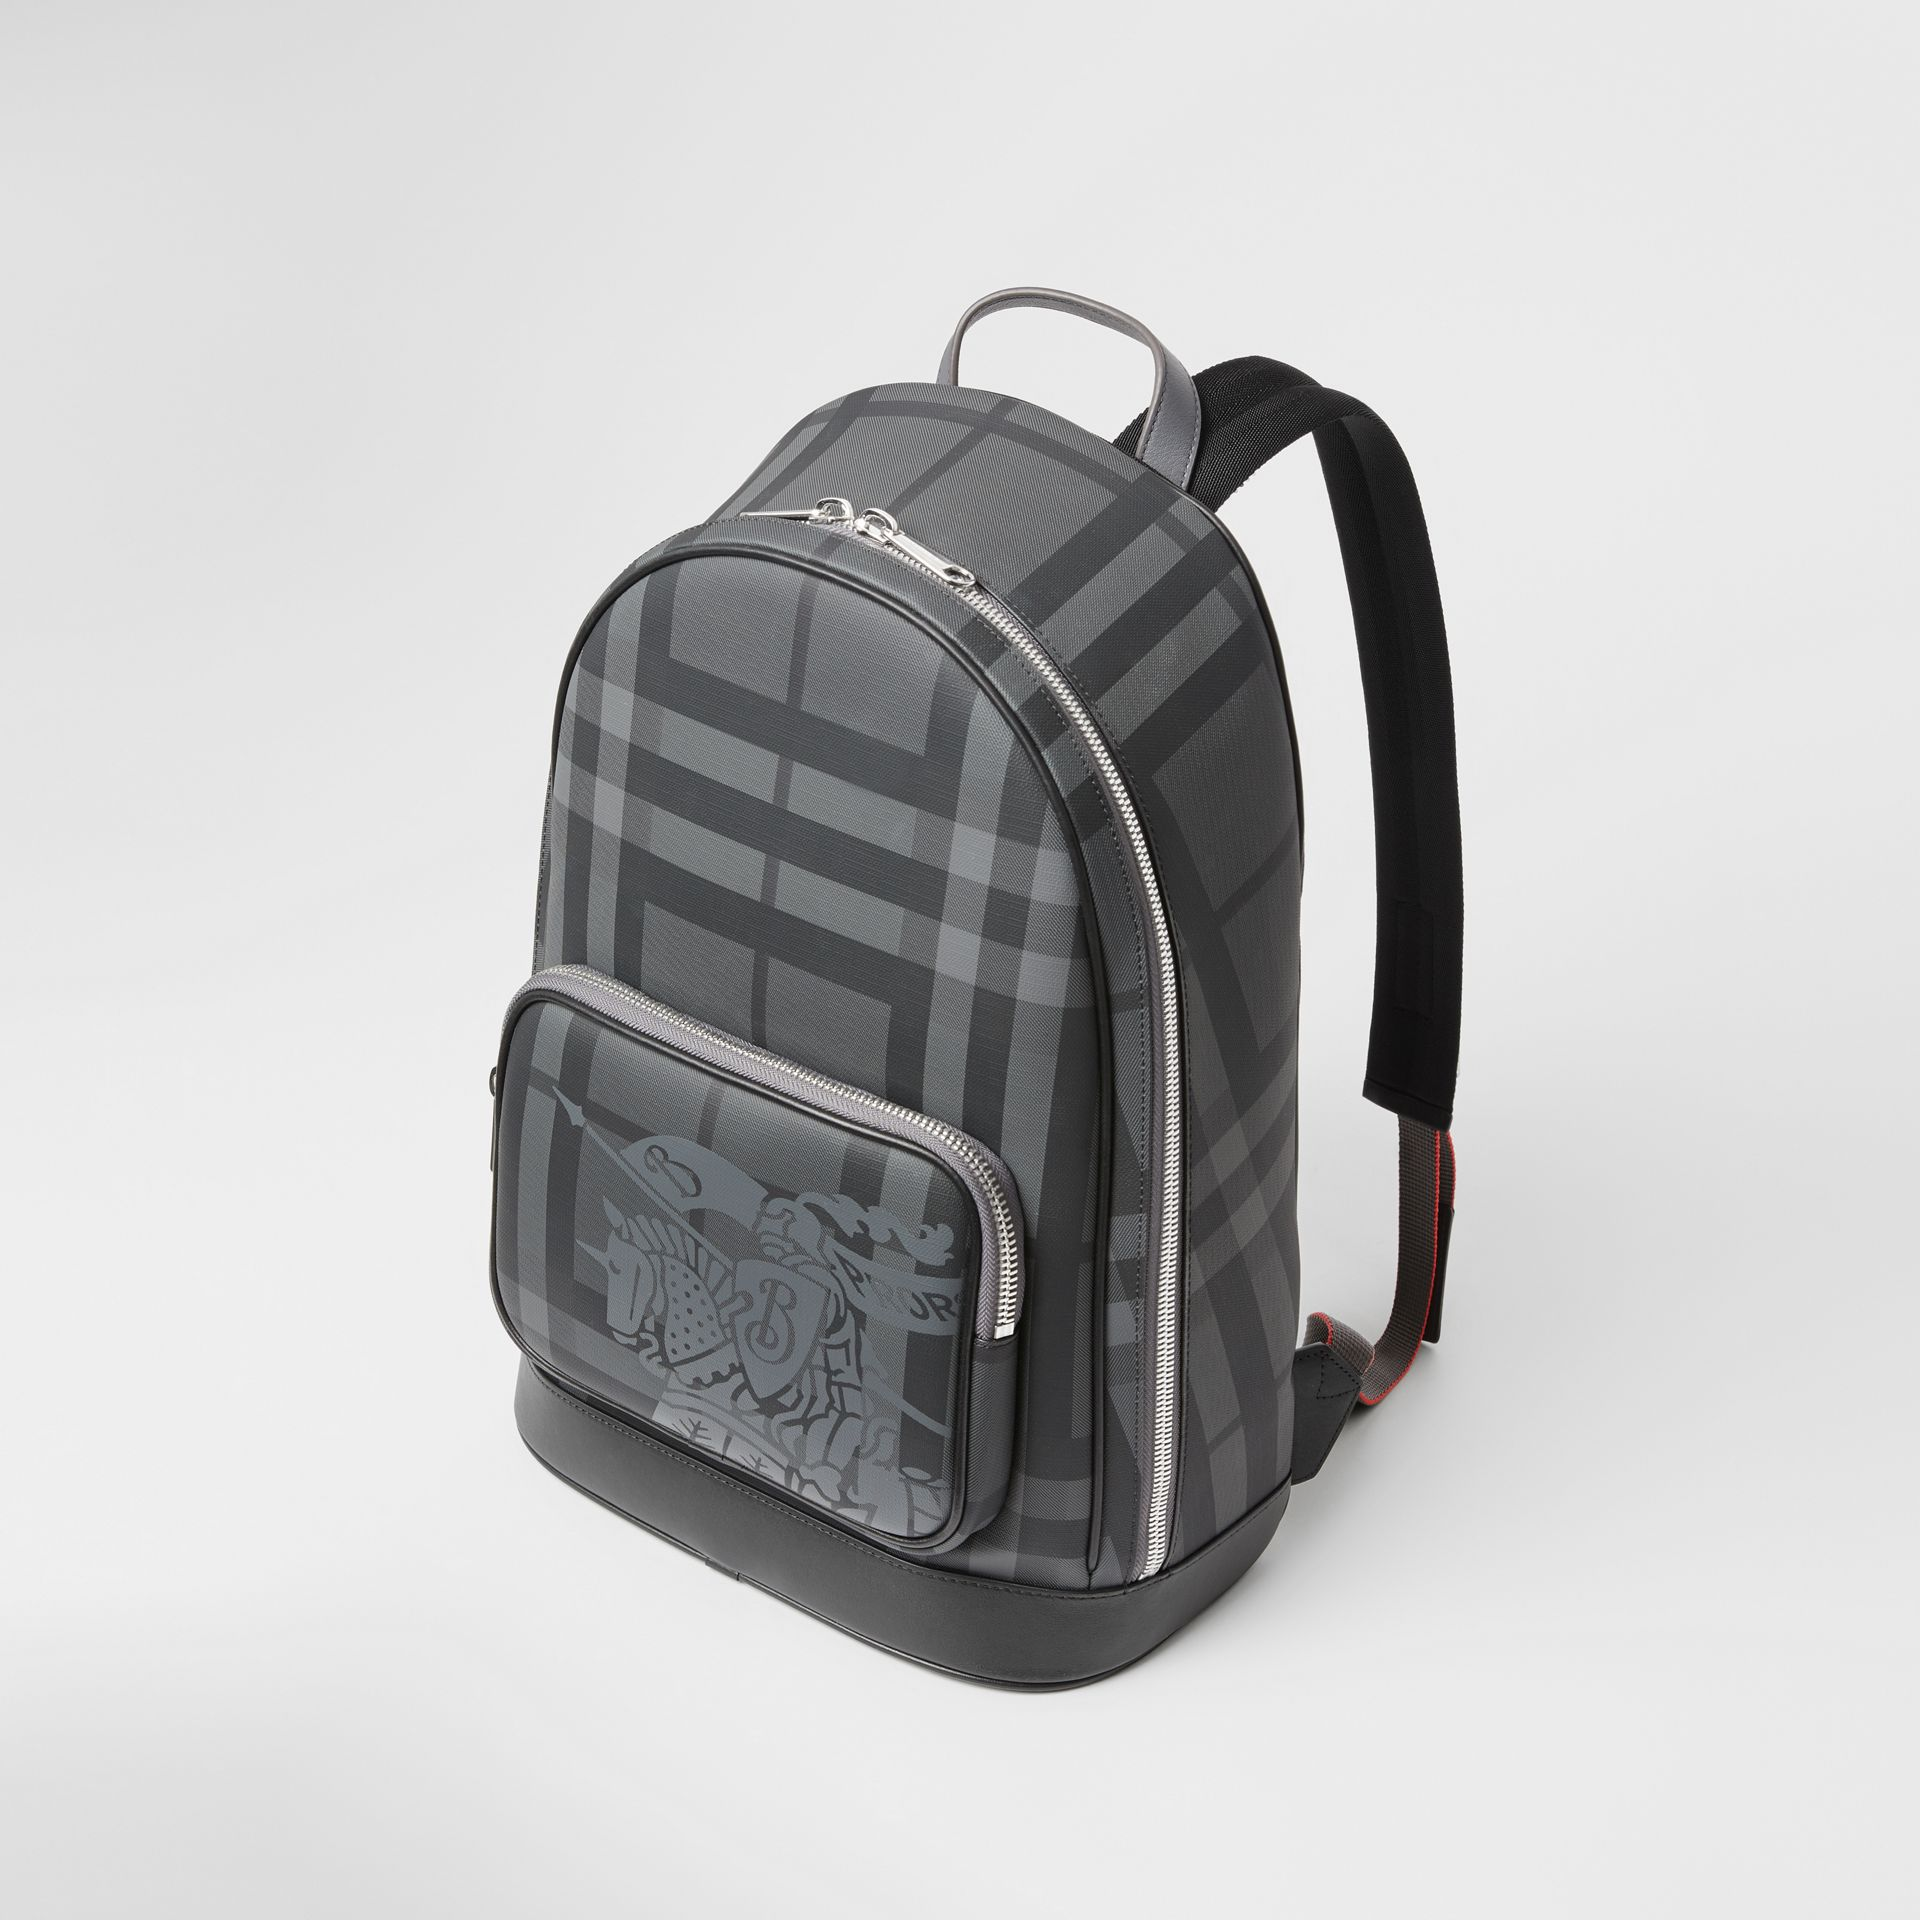 EKD London Check and Leather Backpack in Charcoal/black - Men | Burberry Australia - gallery image 4